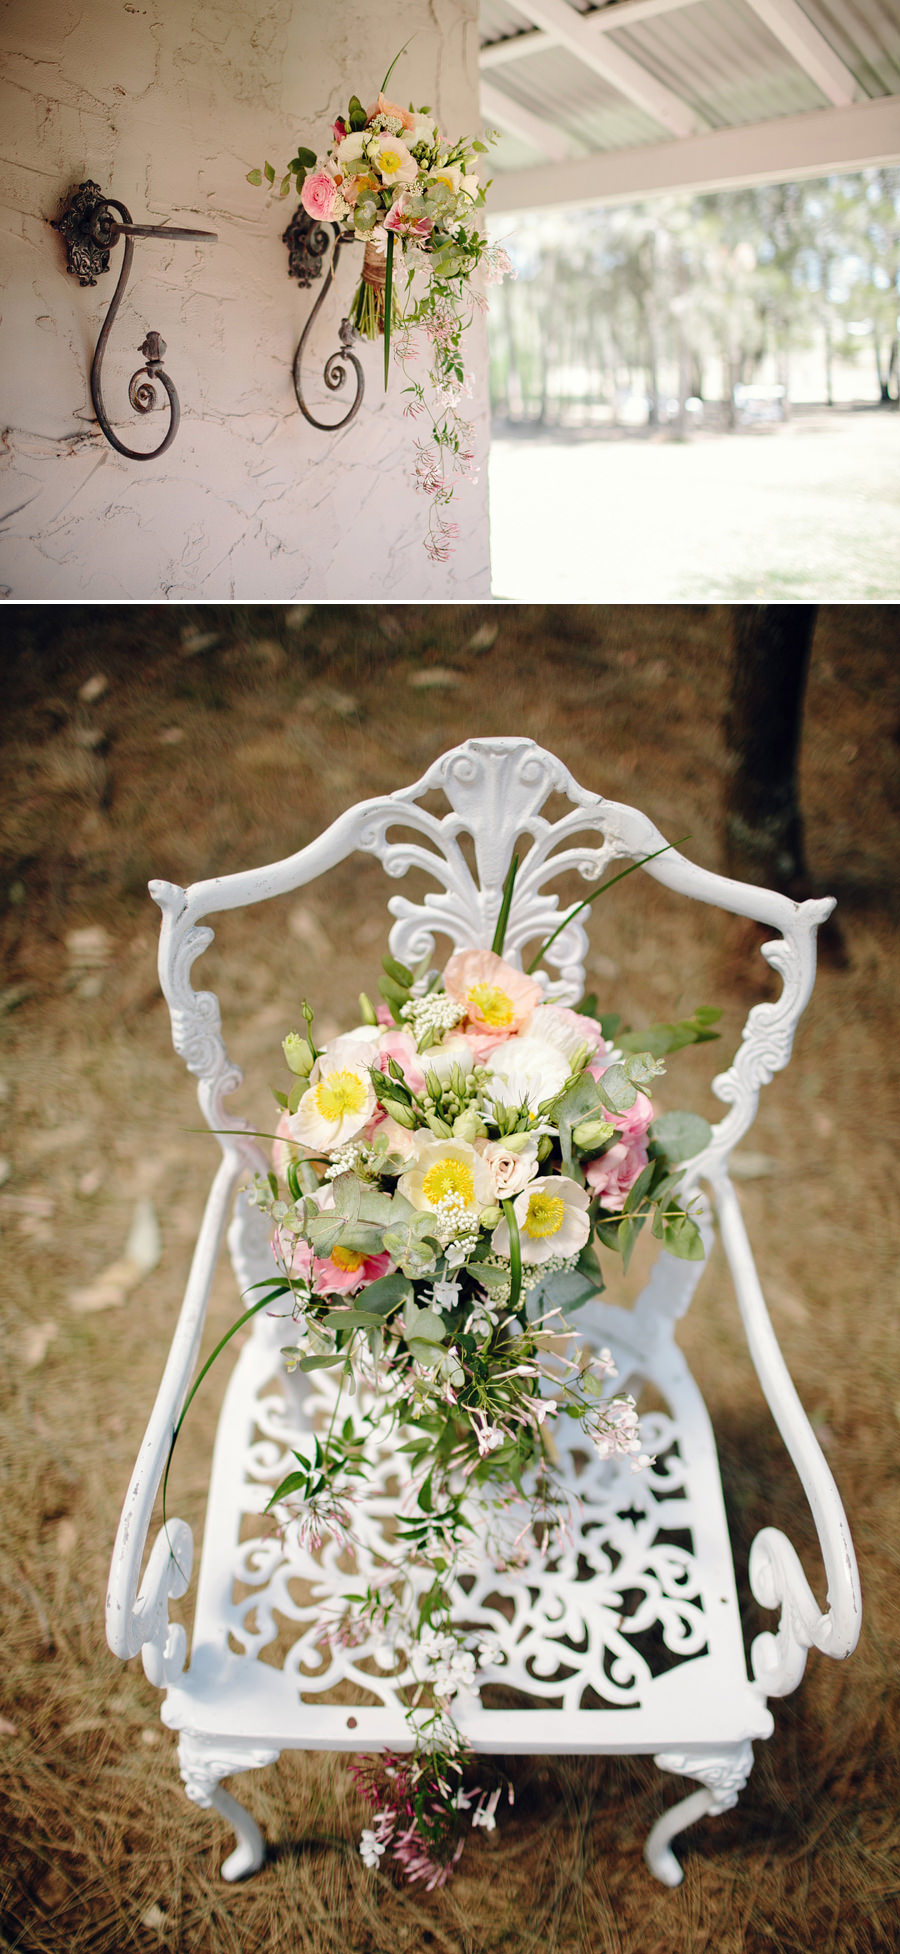 Rustic Wedding Photographers: Bride's bouquet